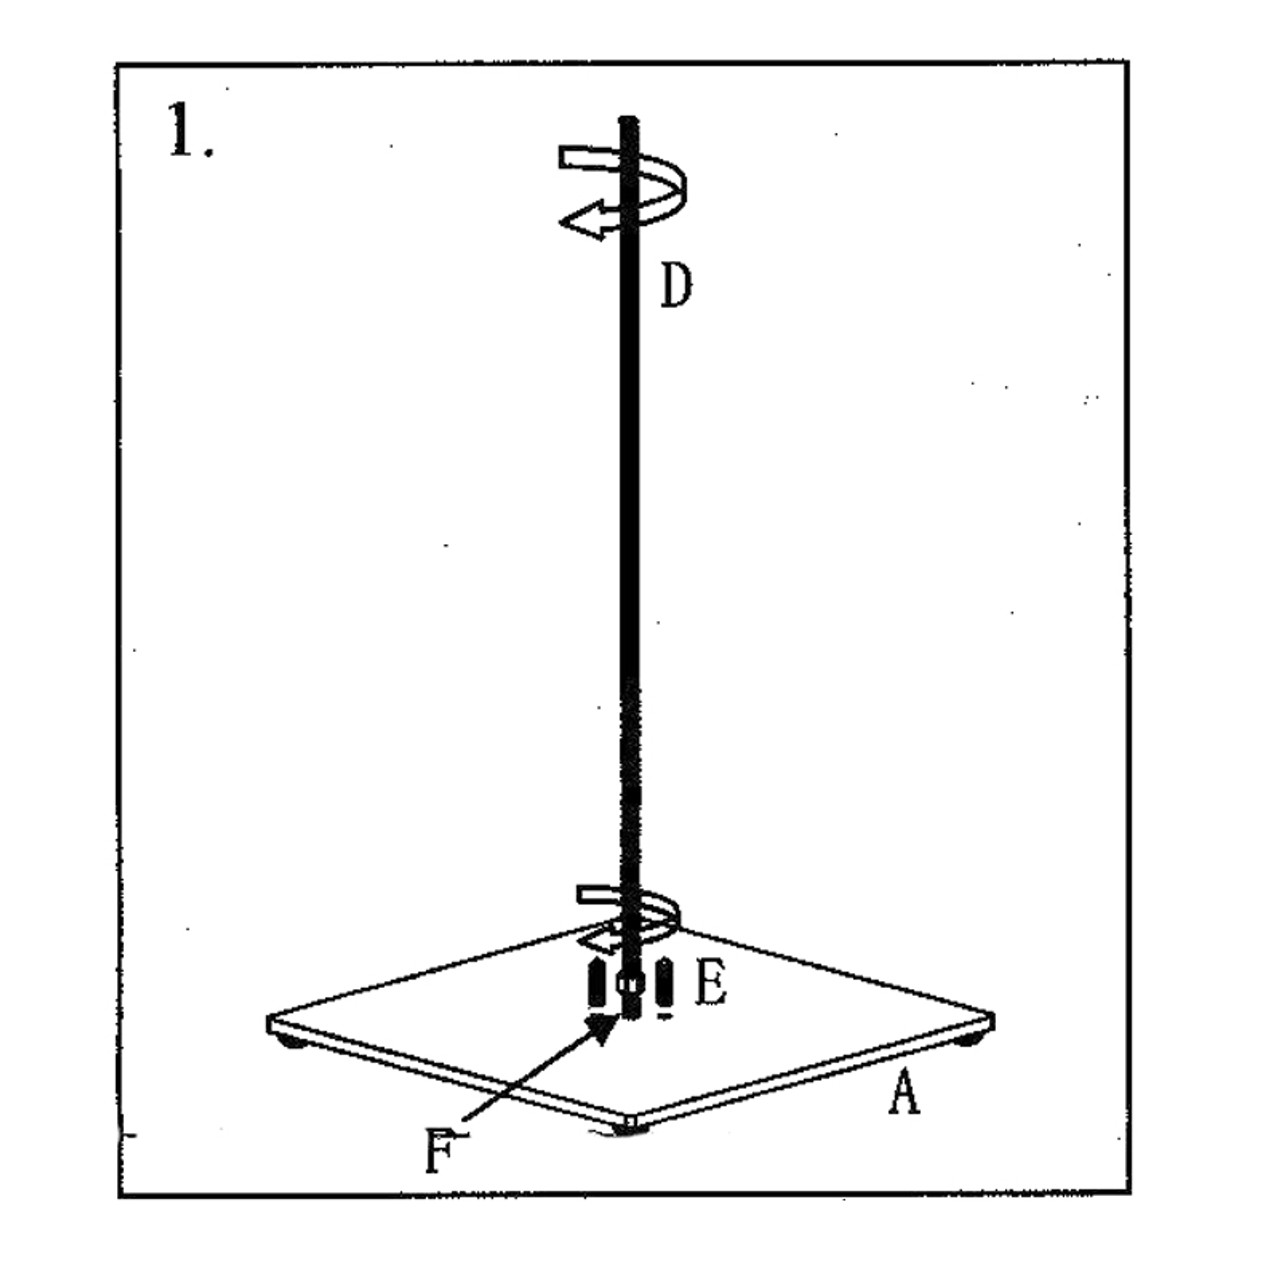 Diagram - securing rod (D) to table base (A)